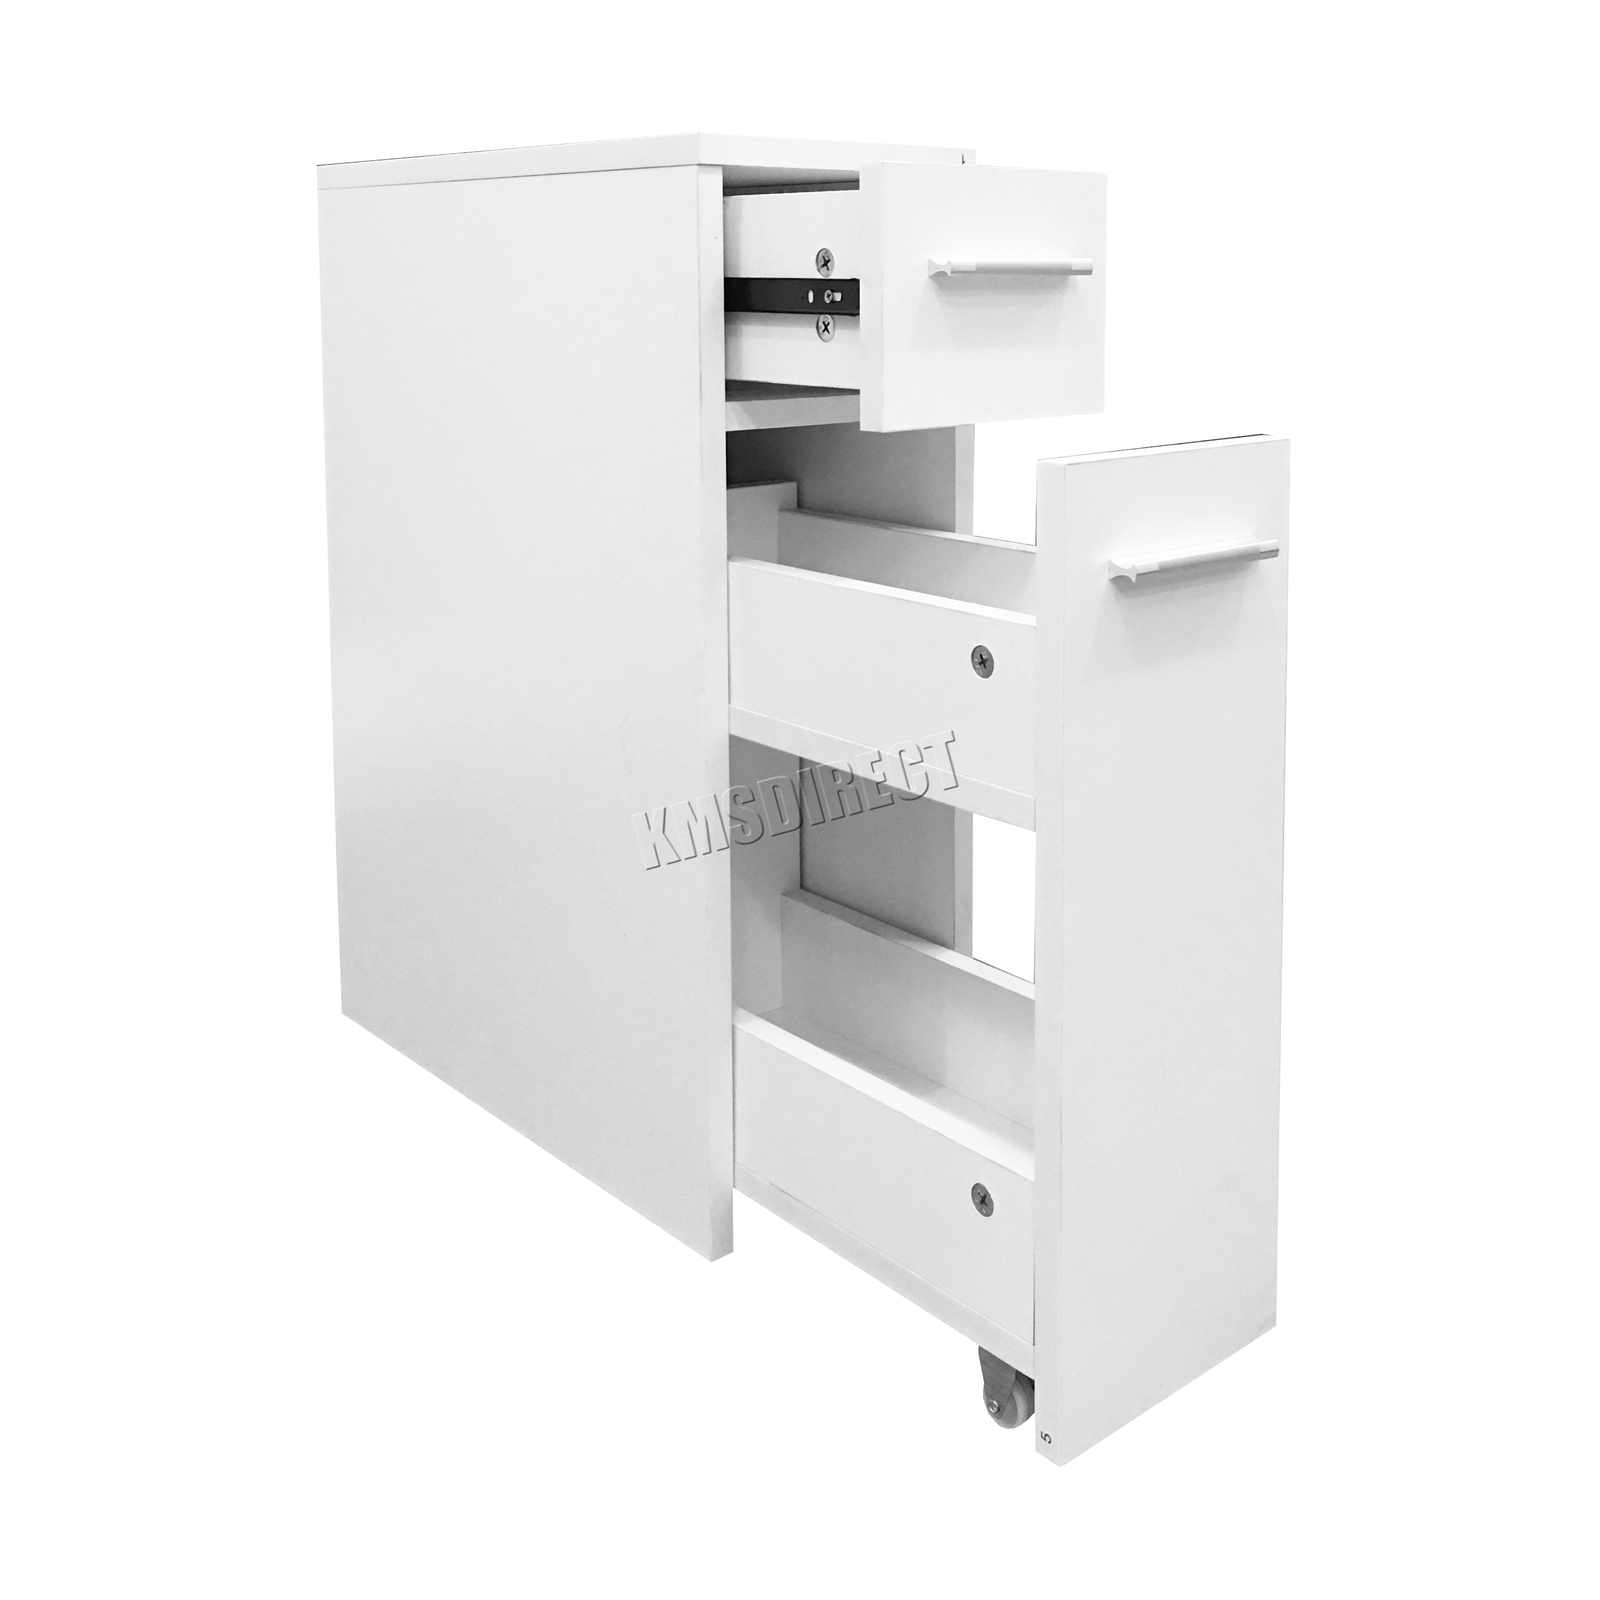 Details About Westwood Slimline Bathroom Slide Out Storage Drawer Cabinet Cupboard Unit White inside sizing 1600 X 1600